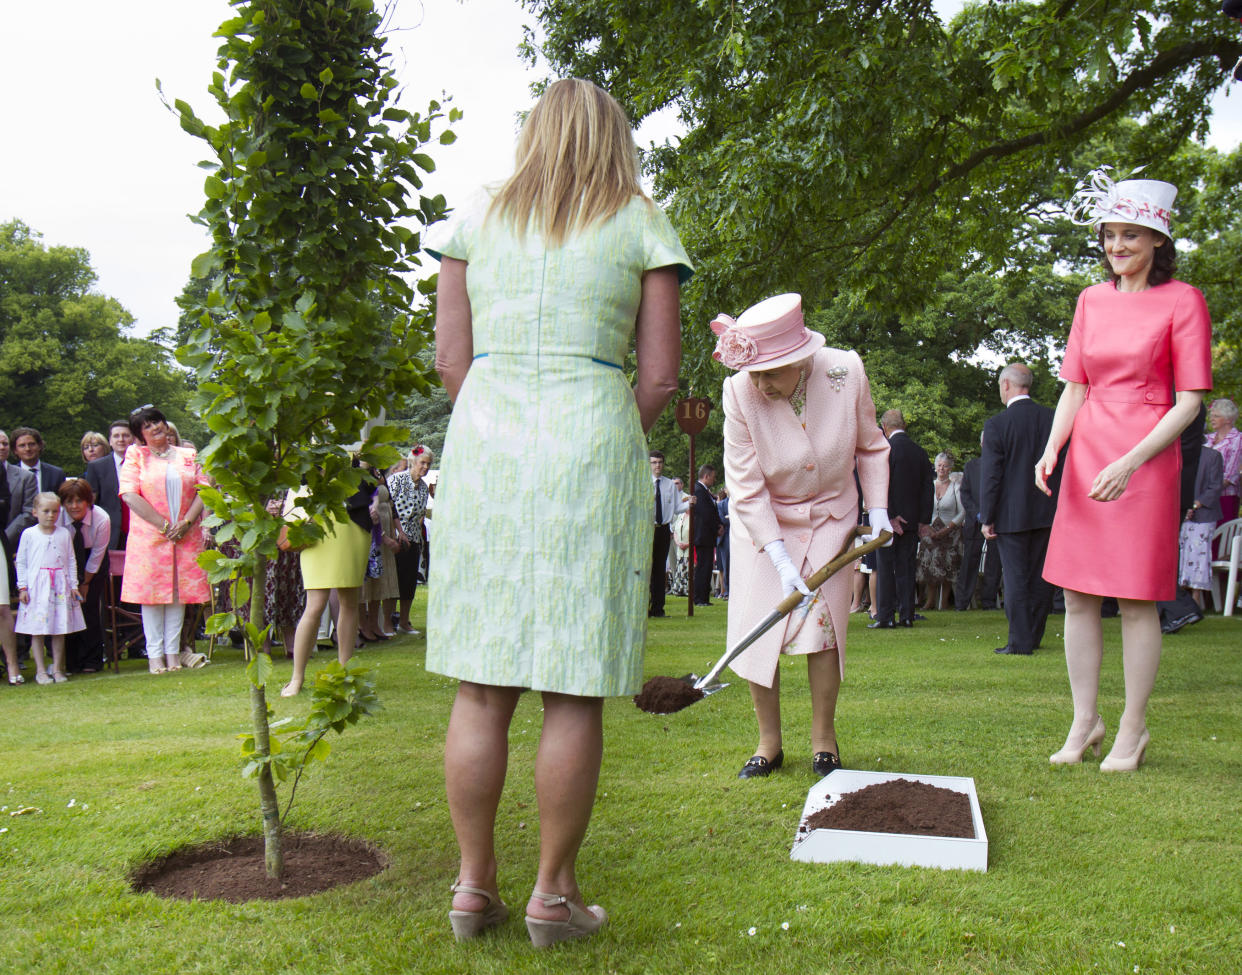 Britain's Queen Elizabeth plants a tree during a garden party at Hillsborough Castle, June 24, 2014. REUTERS/Liam McBurney/Pool (NORTHERN IRELAND - Tags: POLITICS ROYALS SOCIETY)